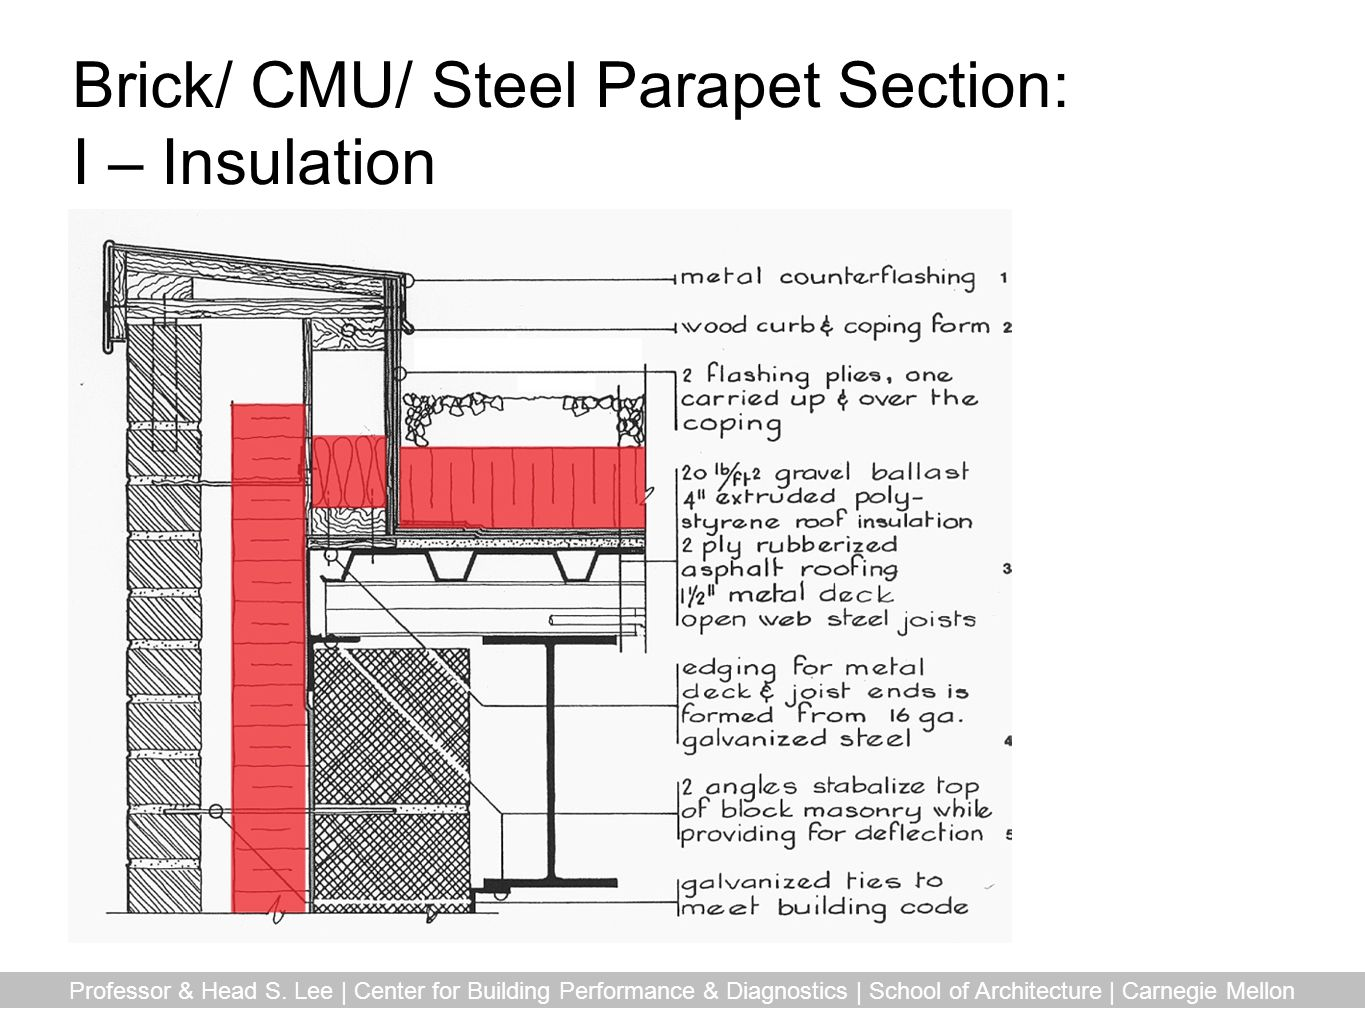 Brick/ CMU/ Steel Parapet Section: I – Insulation